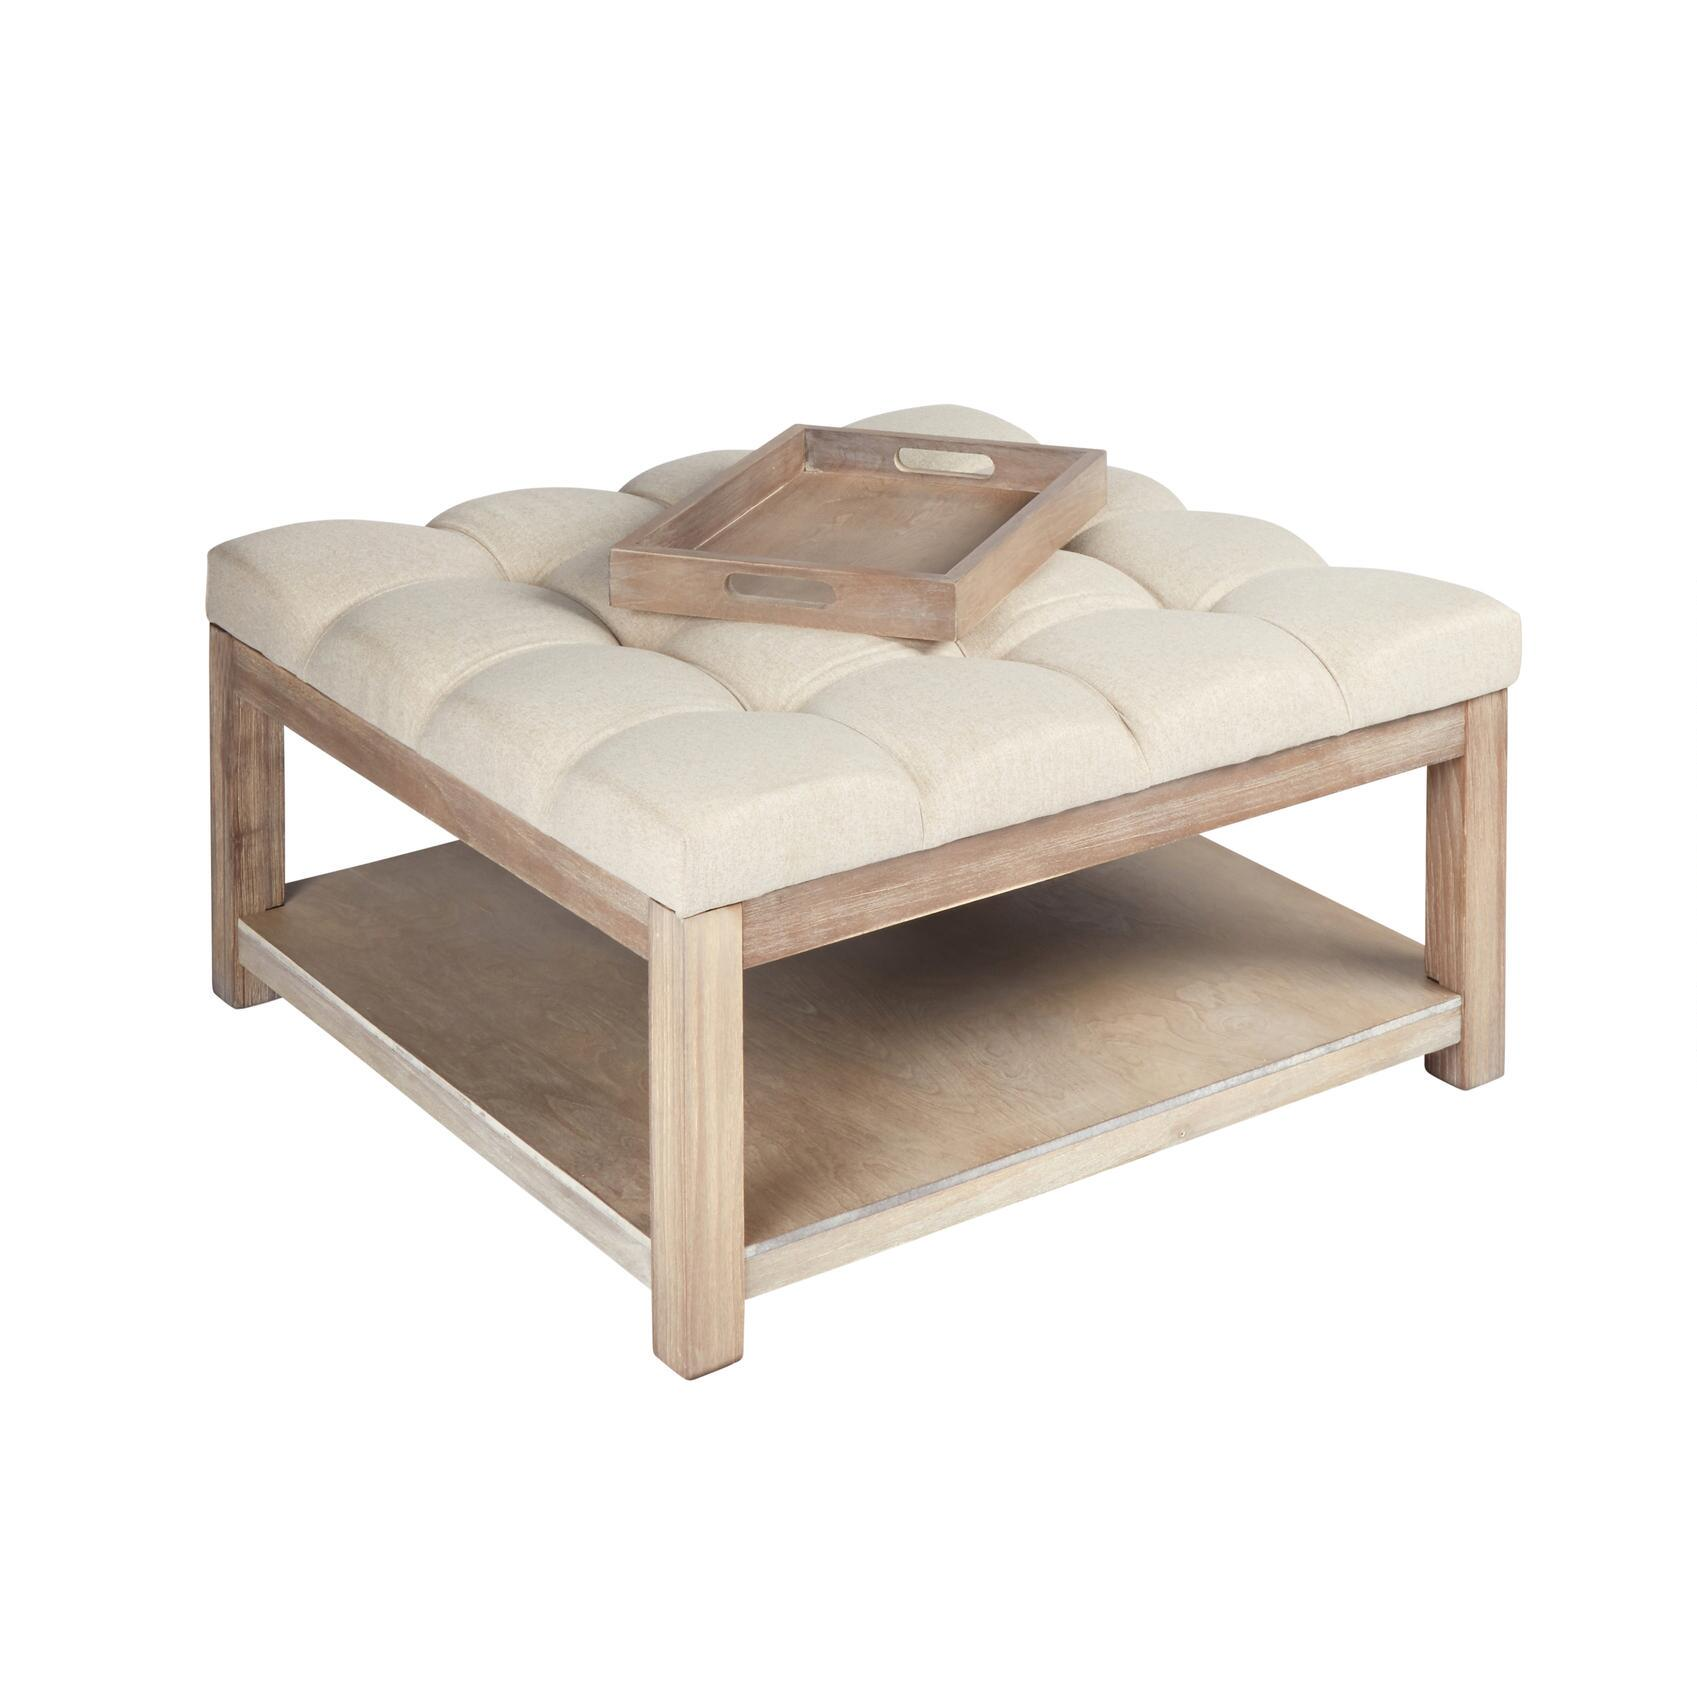 the grainhouse tufted coffee table ottoman with tray